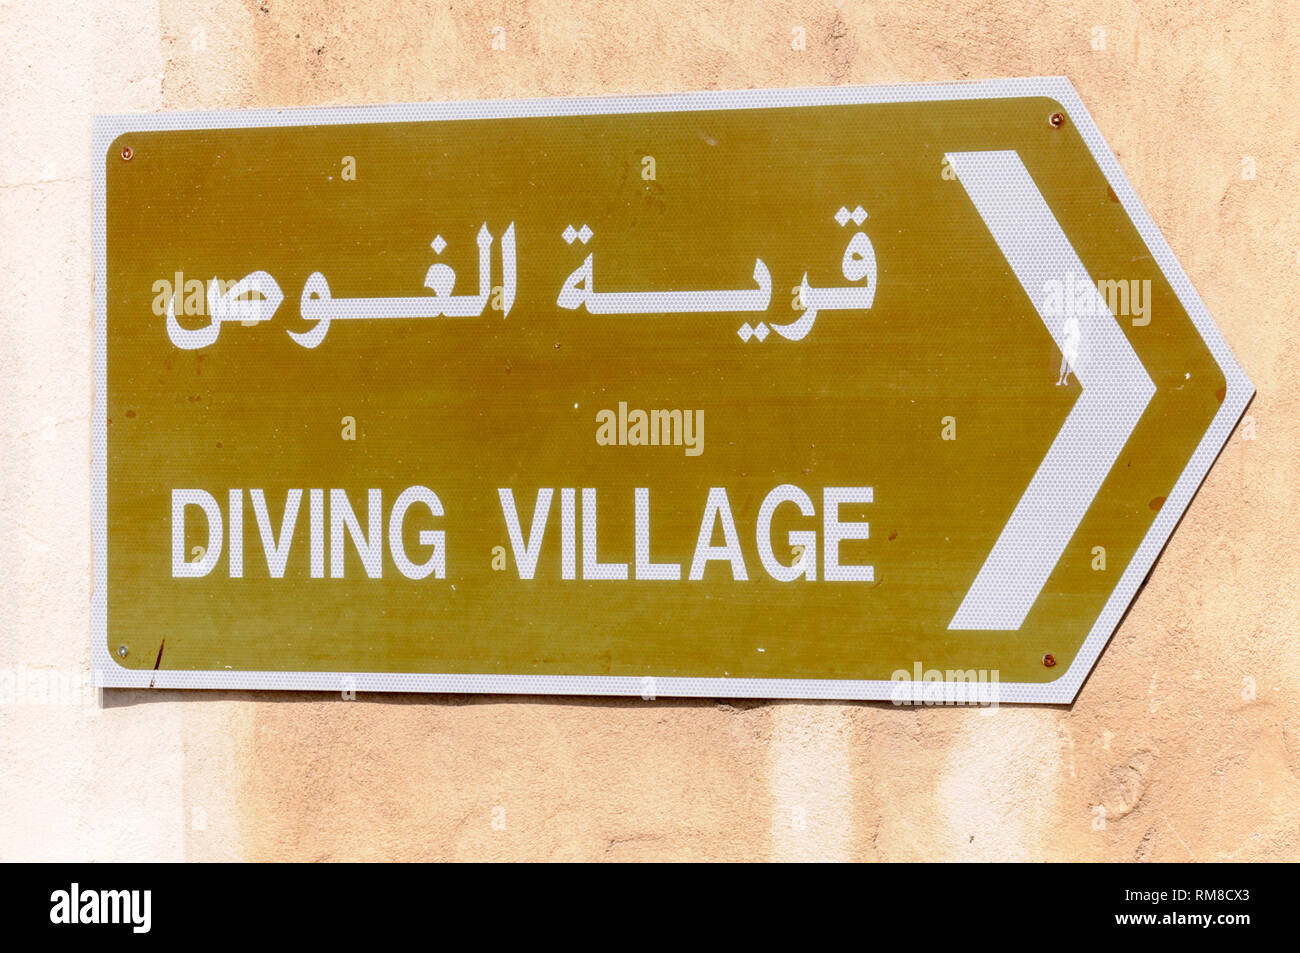 Doing village as part of the TDIC Diving Centre in Dubai in the